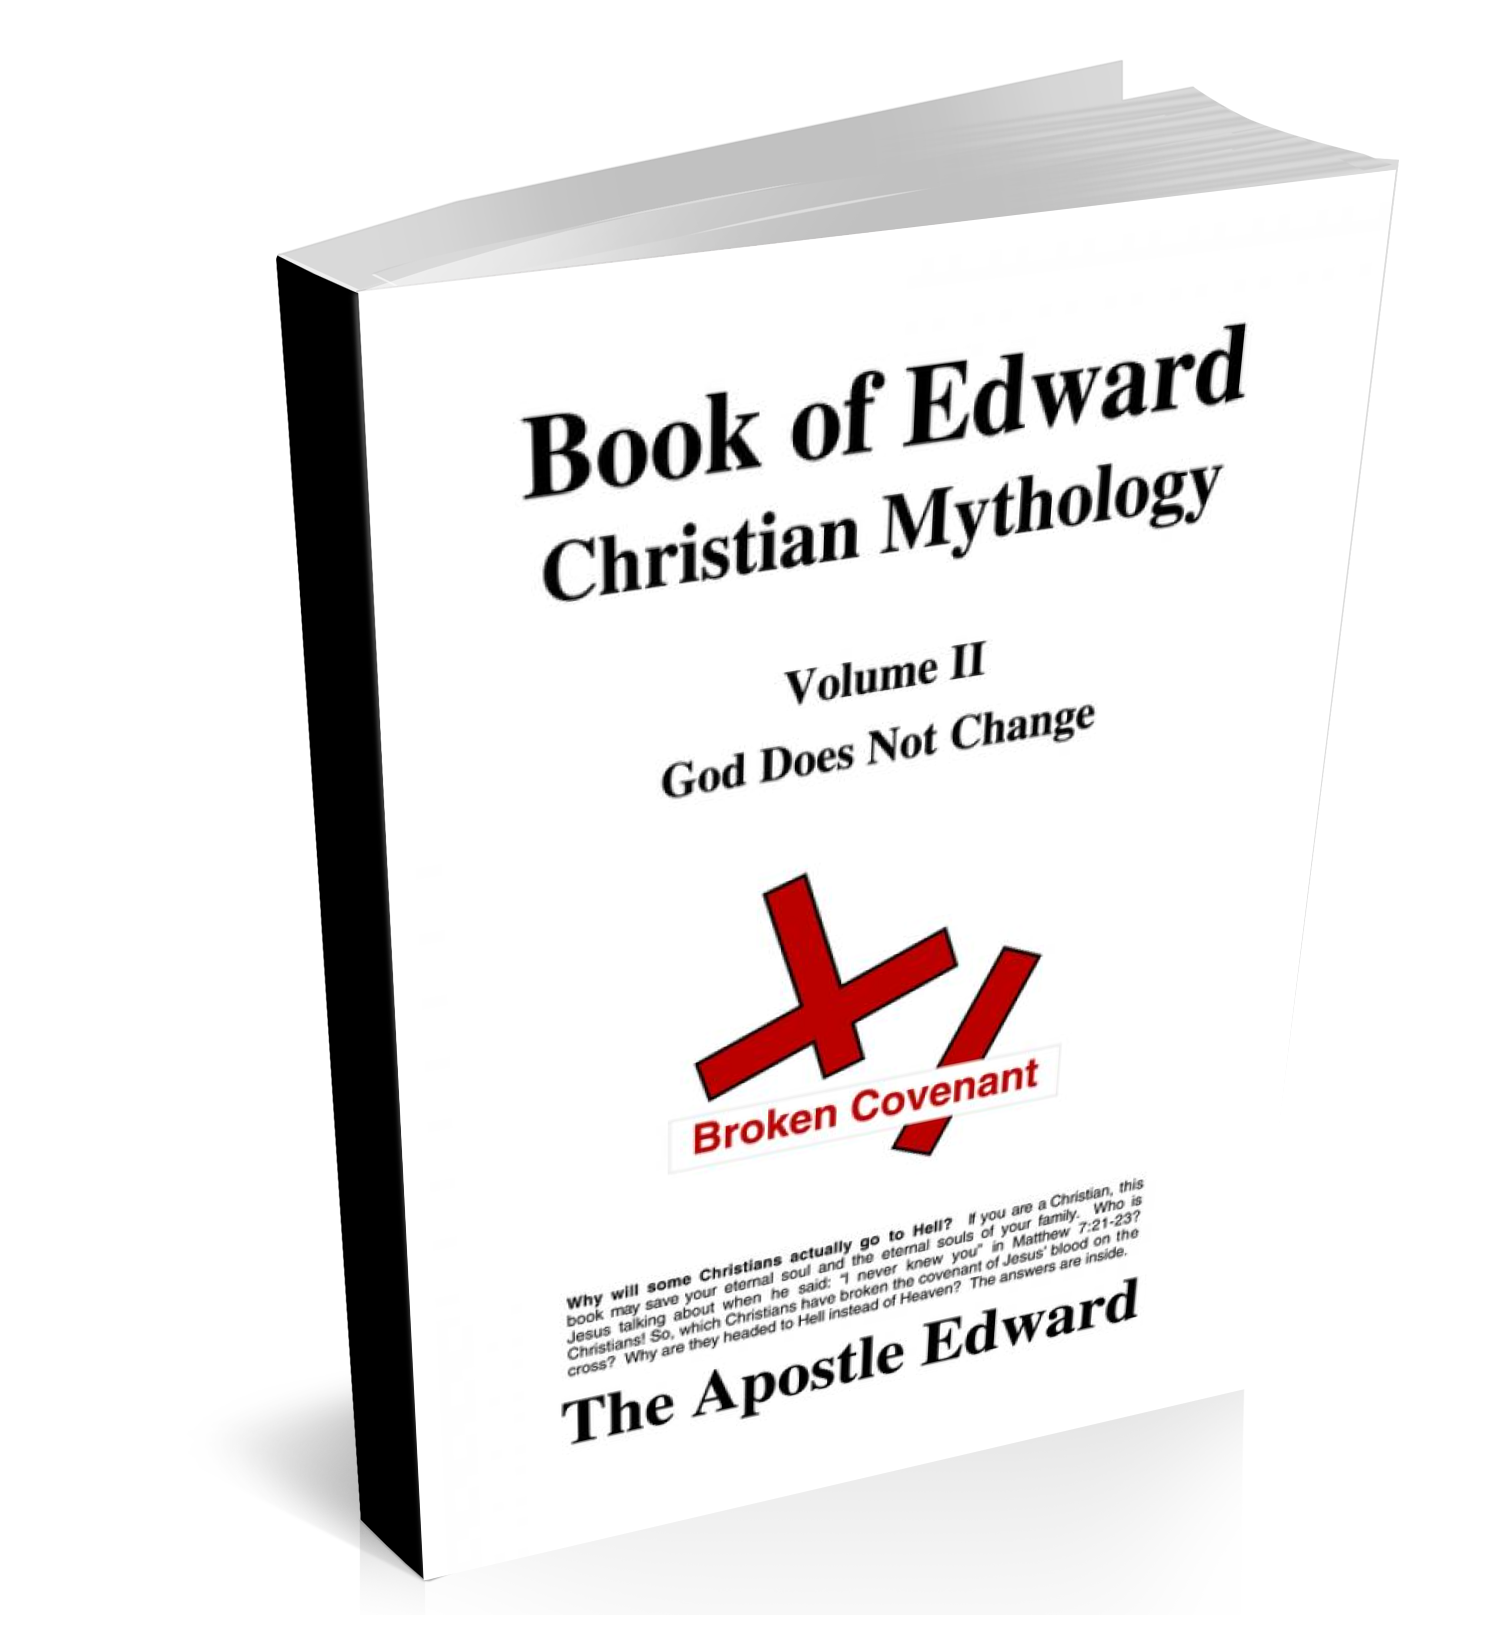 Image of Apostle Edward's Book of Edward Volume II